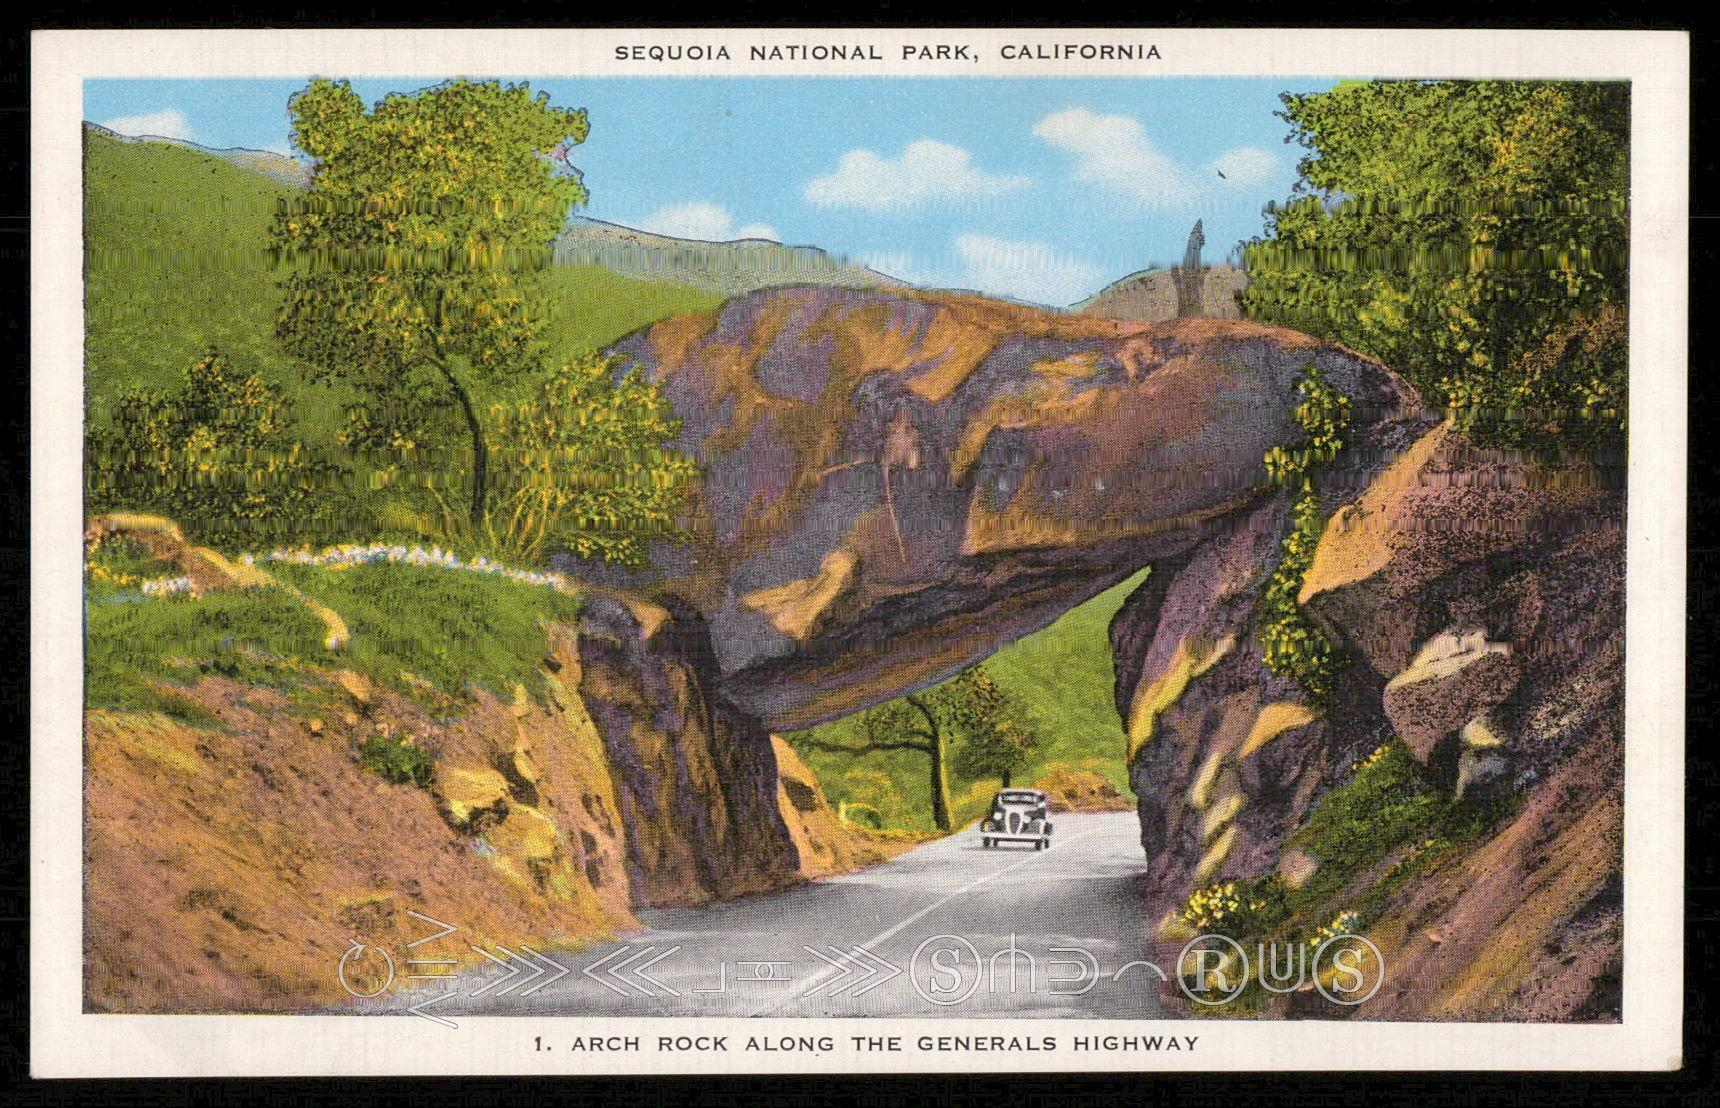 Arch Rock Along The Generals Highway - Sequoia National Park